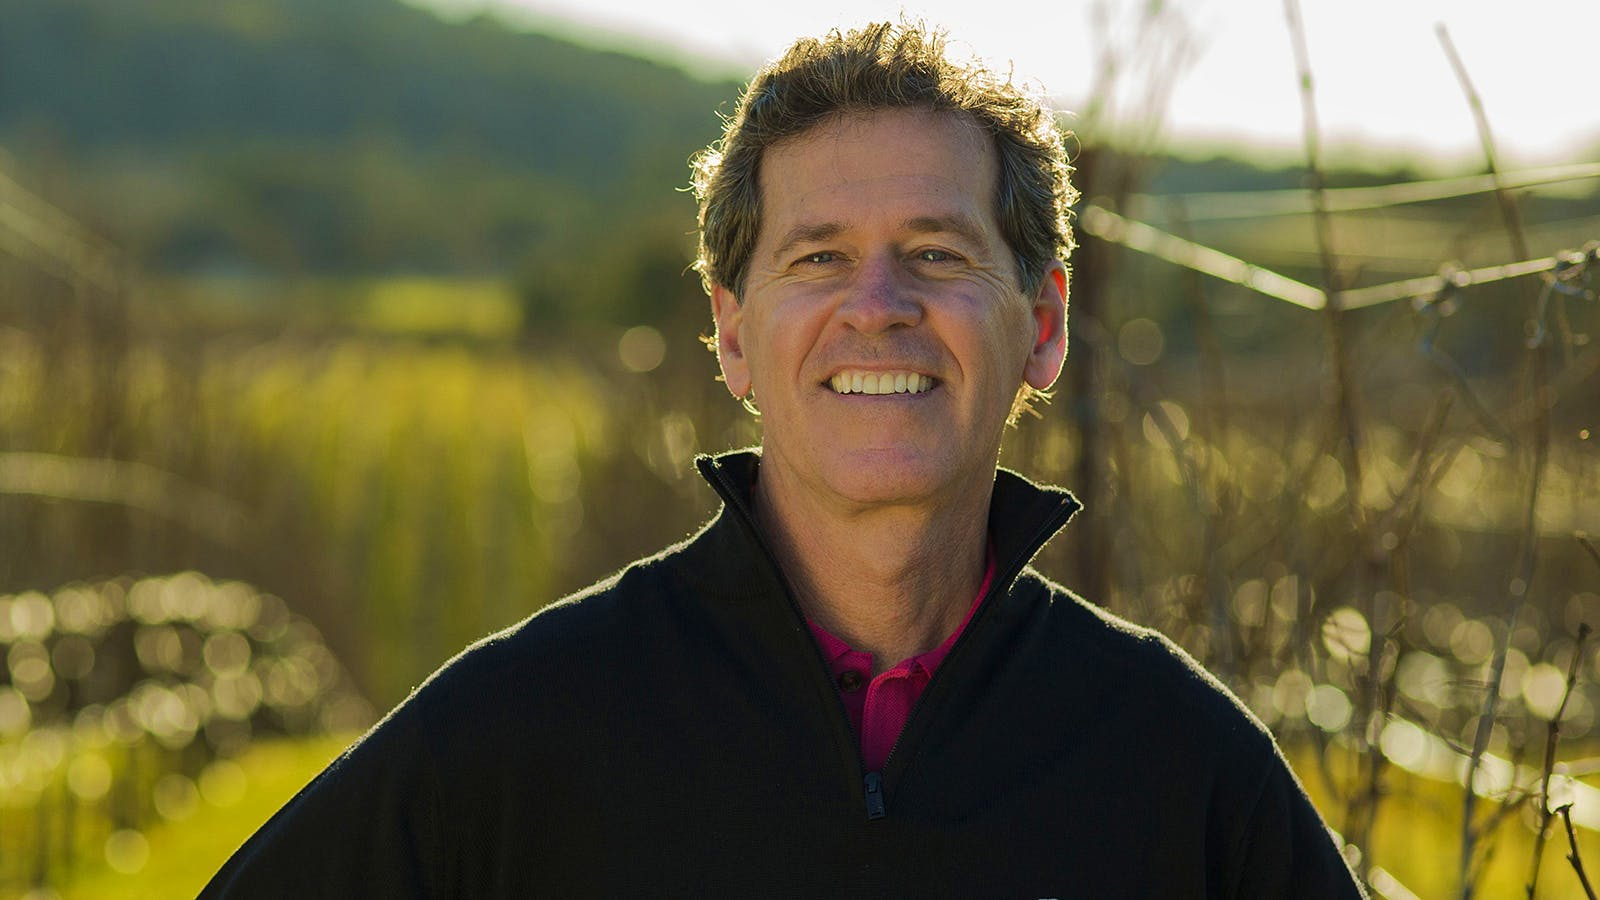 The World's Winemaker: A Live Chat with Paul Hobbs